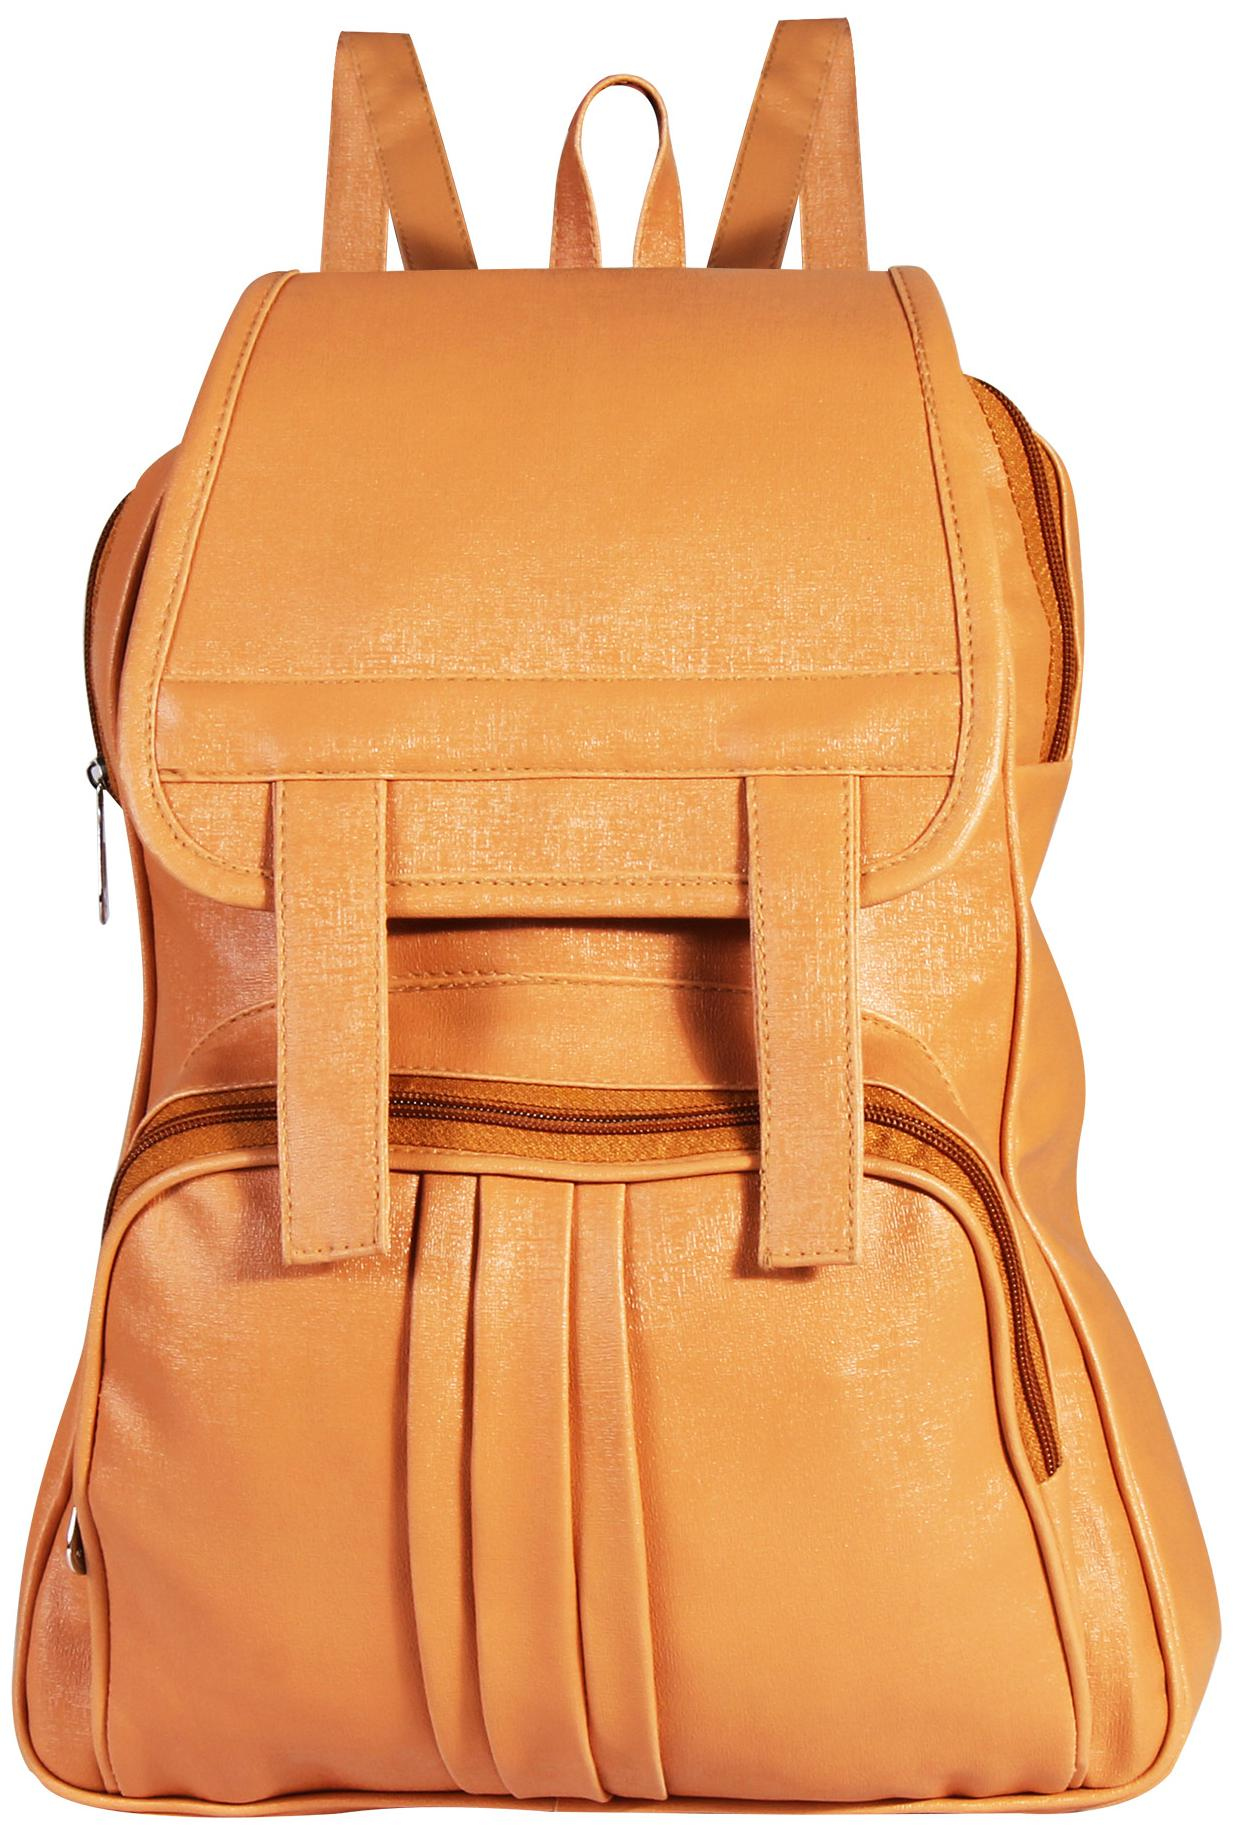 Gen-Y GYB-19 Brown Tan 8L Backpack for Women and Girls